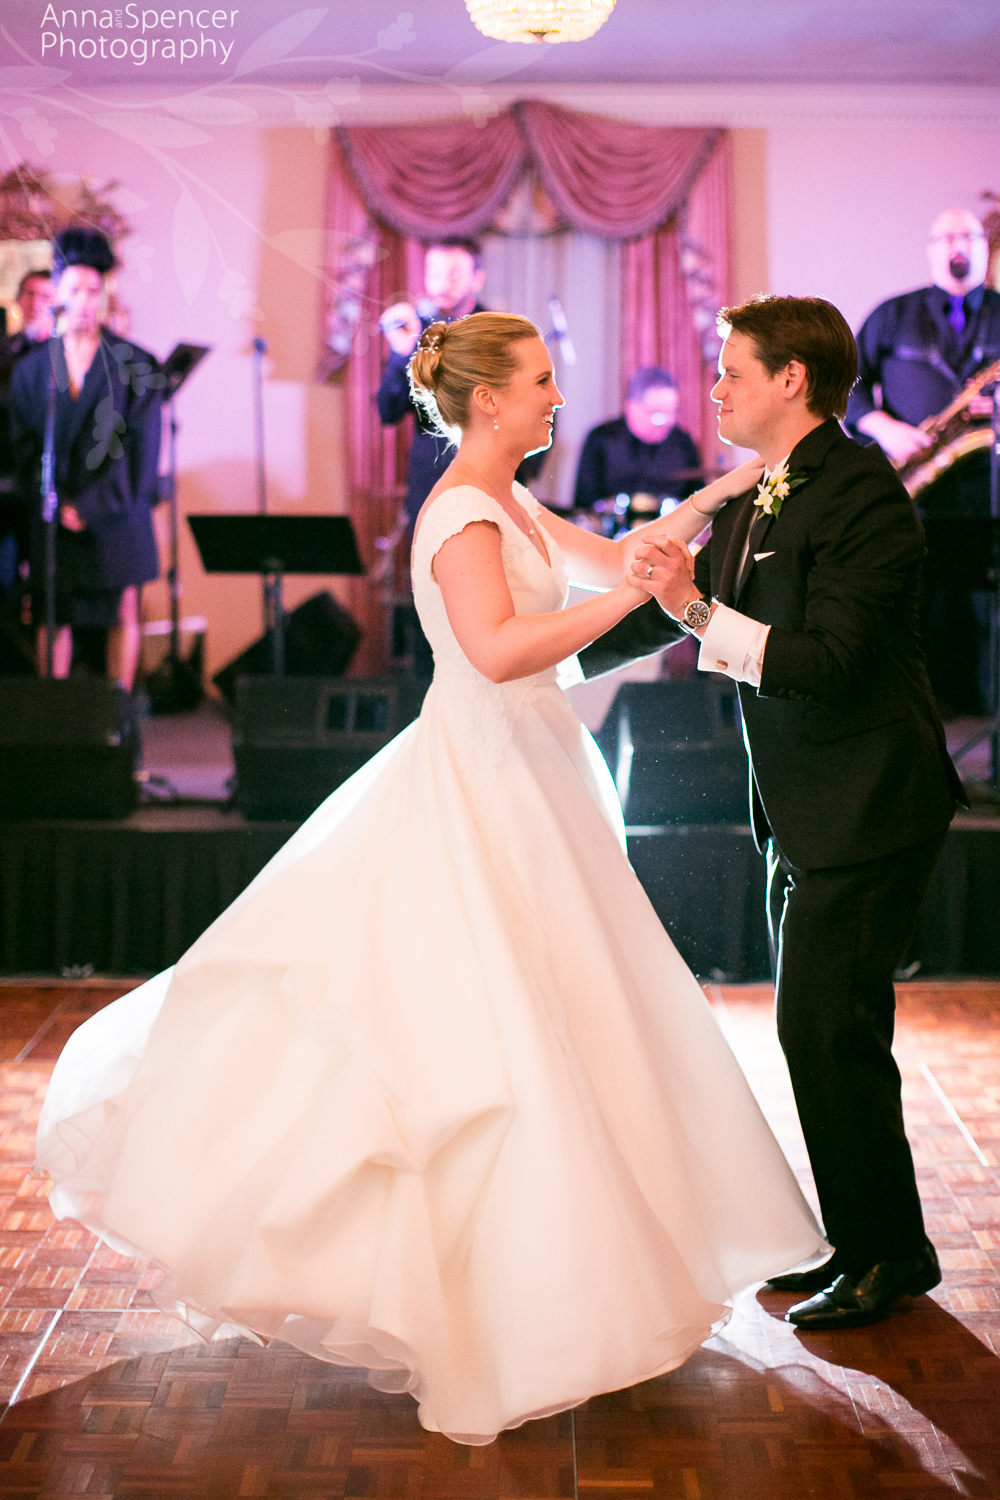 Bride and grooms first dance in a ballroom